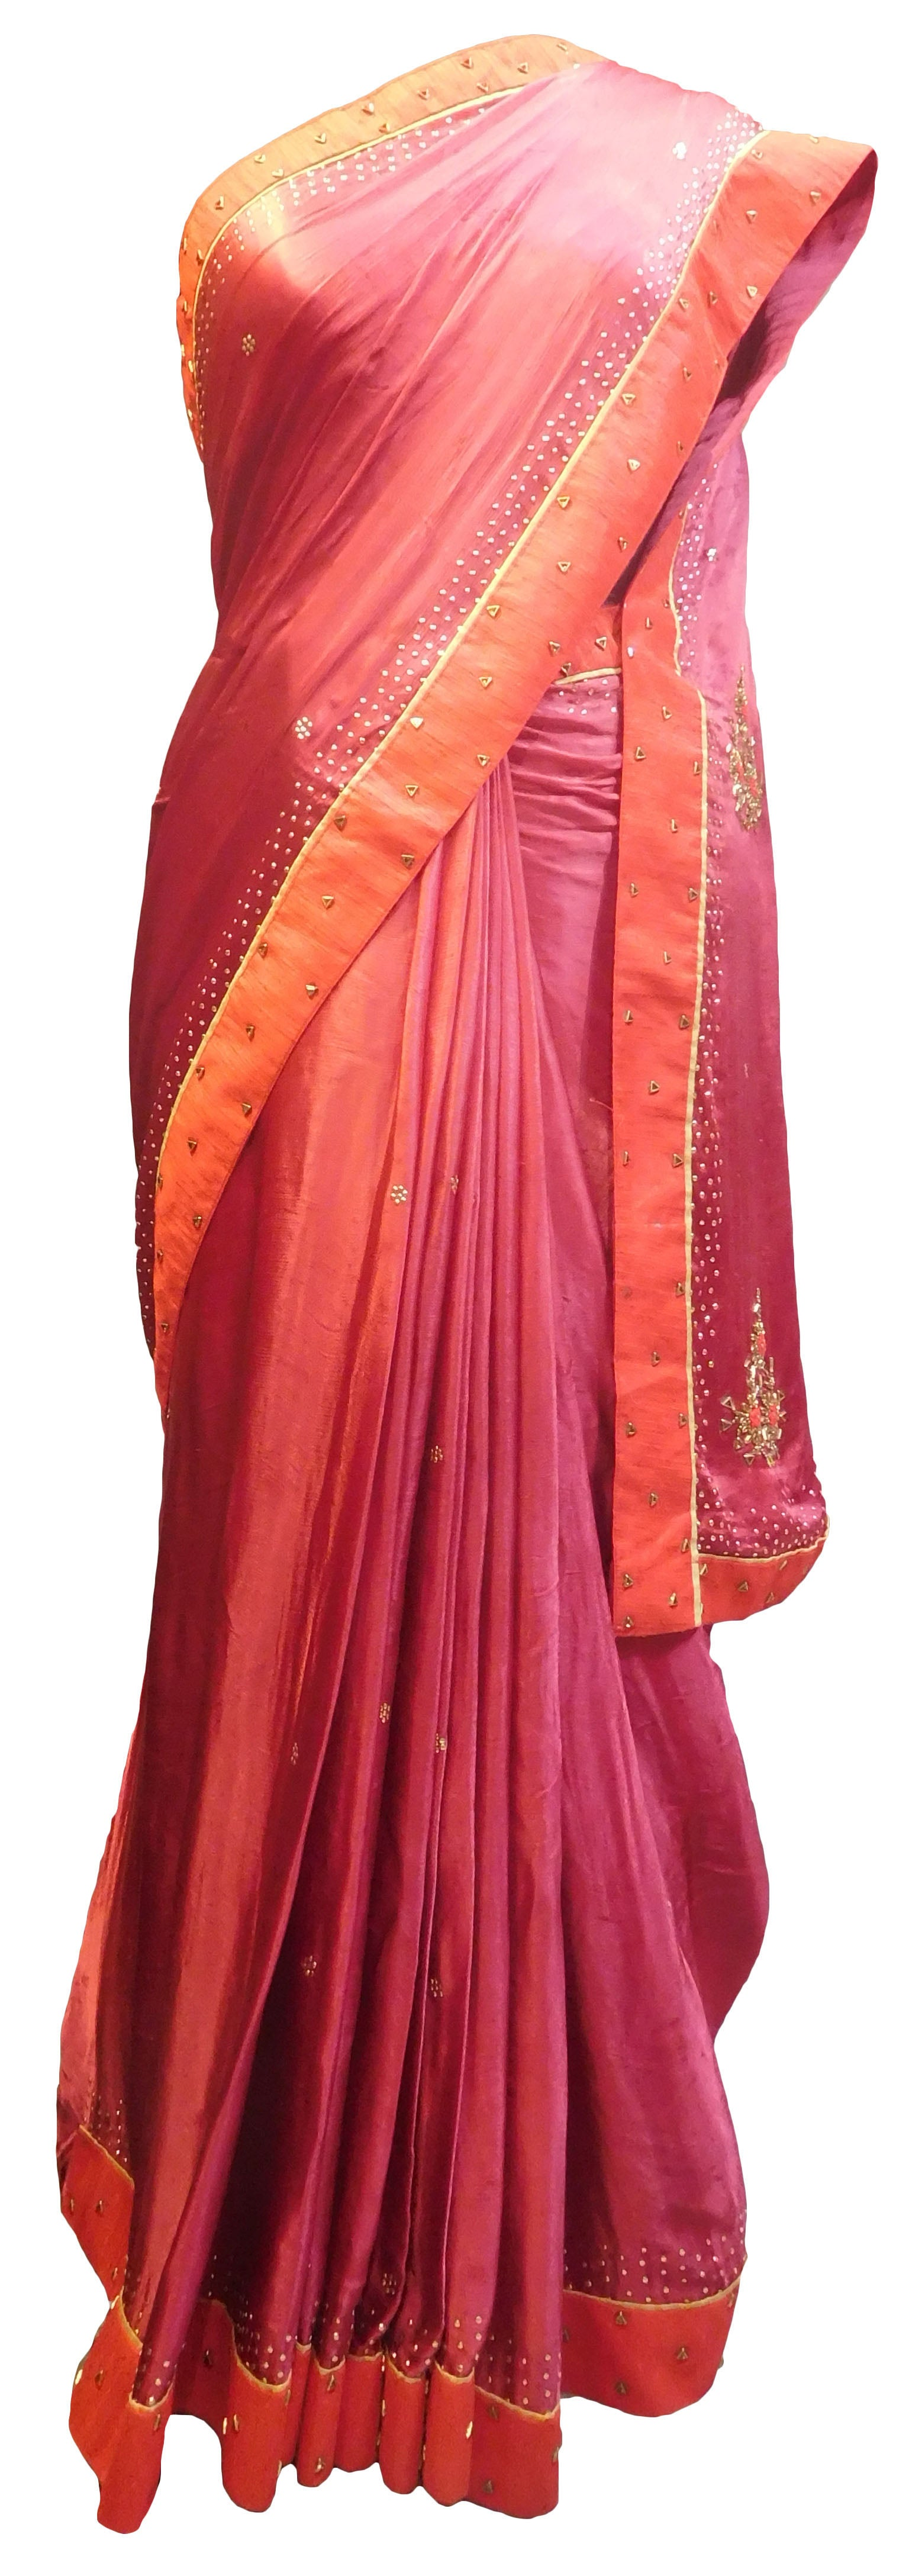 SMSAREE Wine Designer Wedding Partywear Crepe (Chinon) Thread & Stone Hand Embroidery Work Bridal Saree Sari With Blouse Piece E848